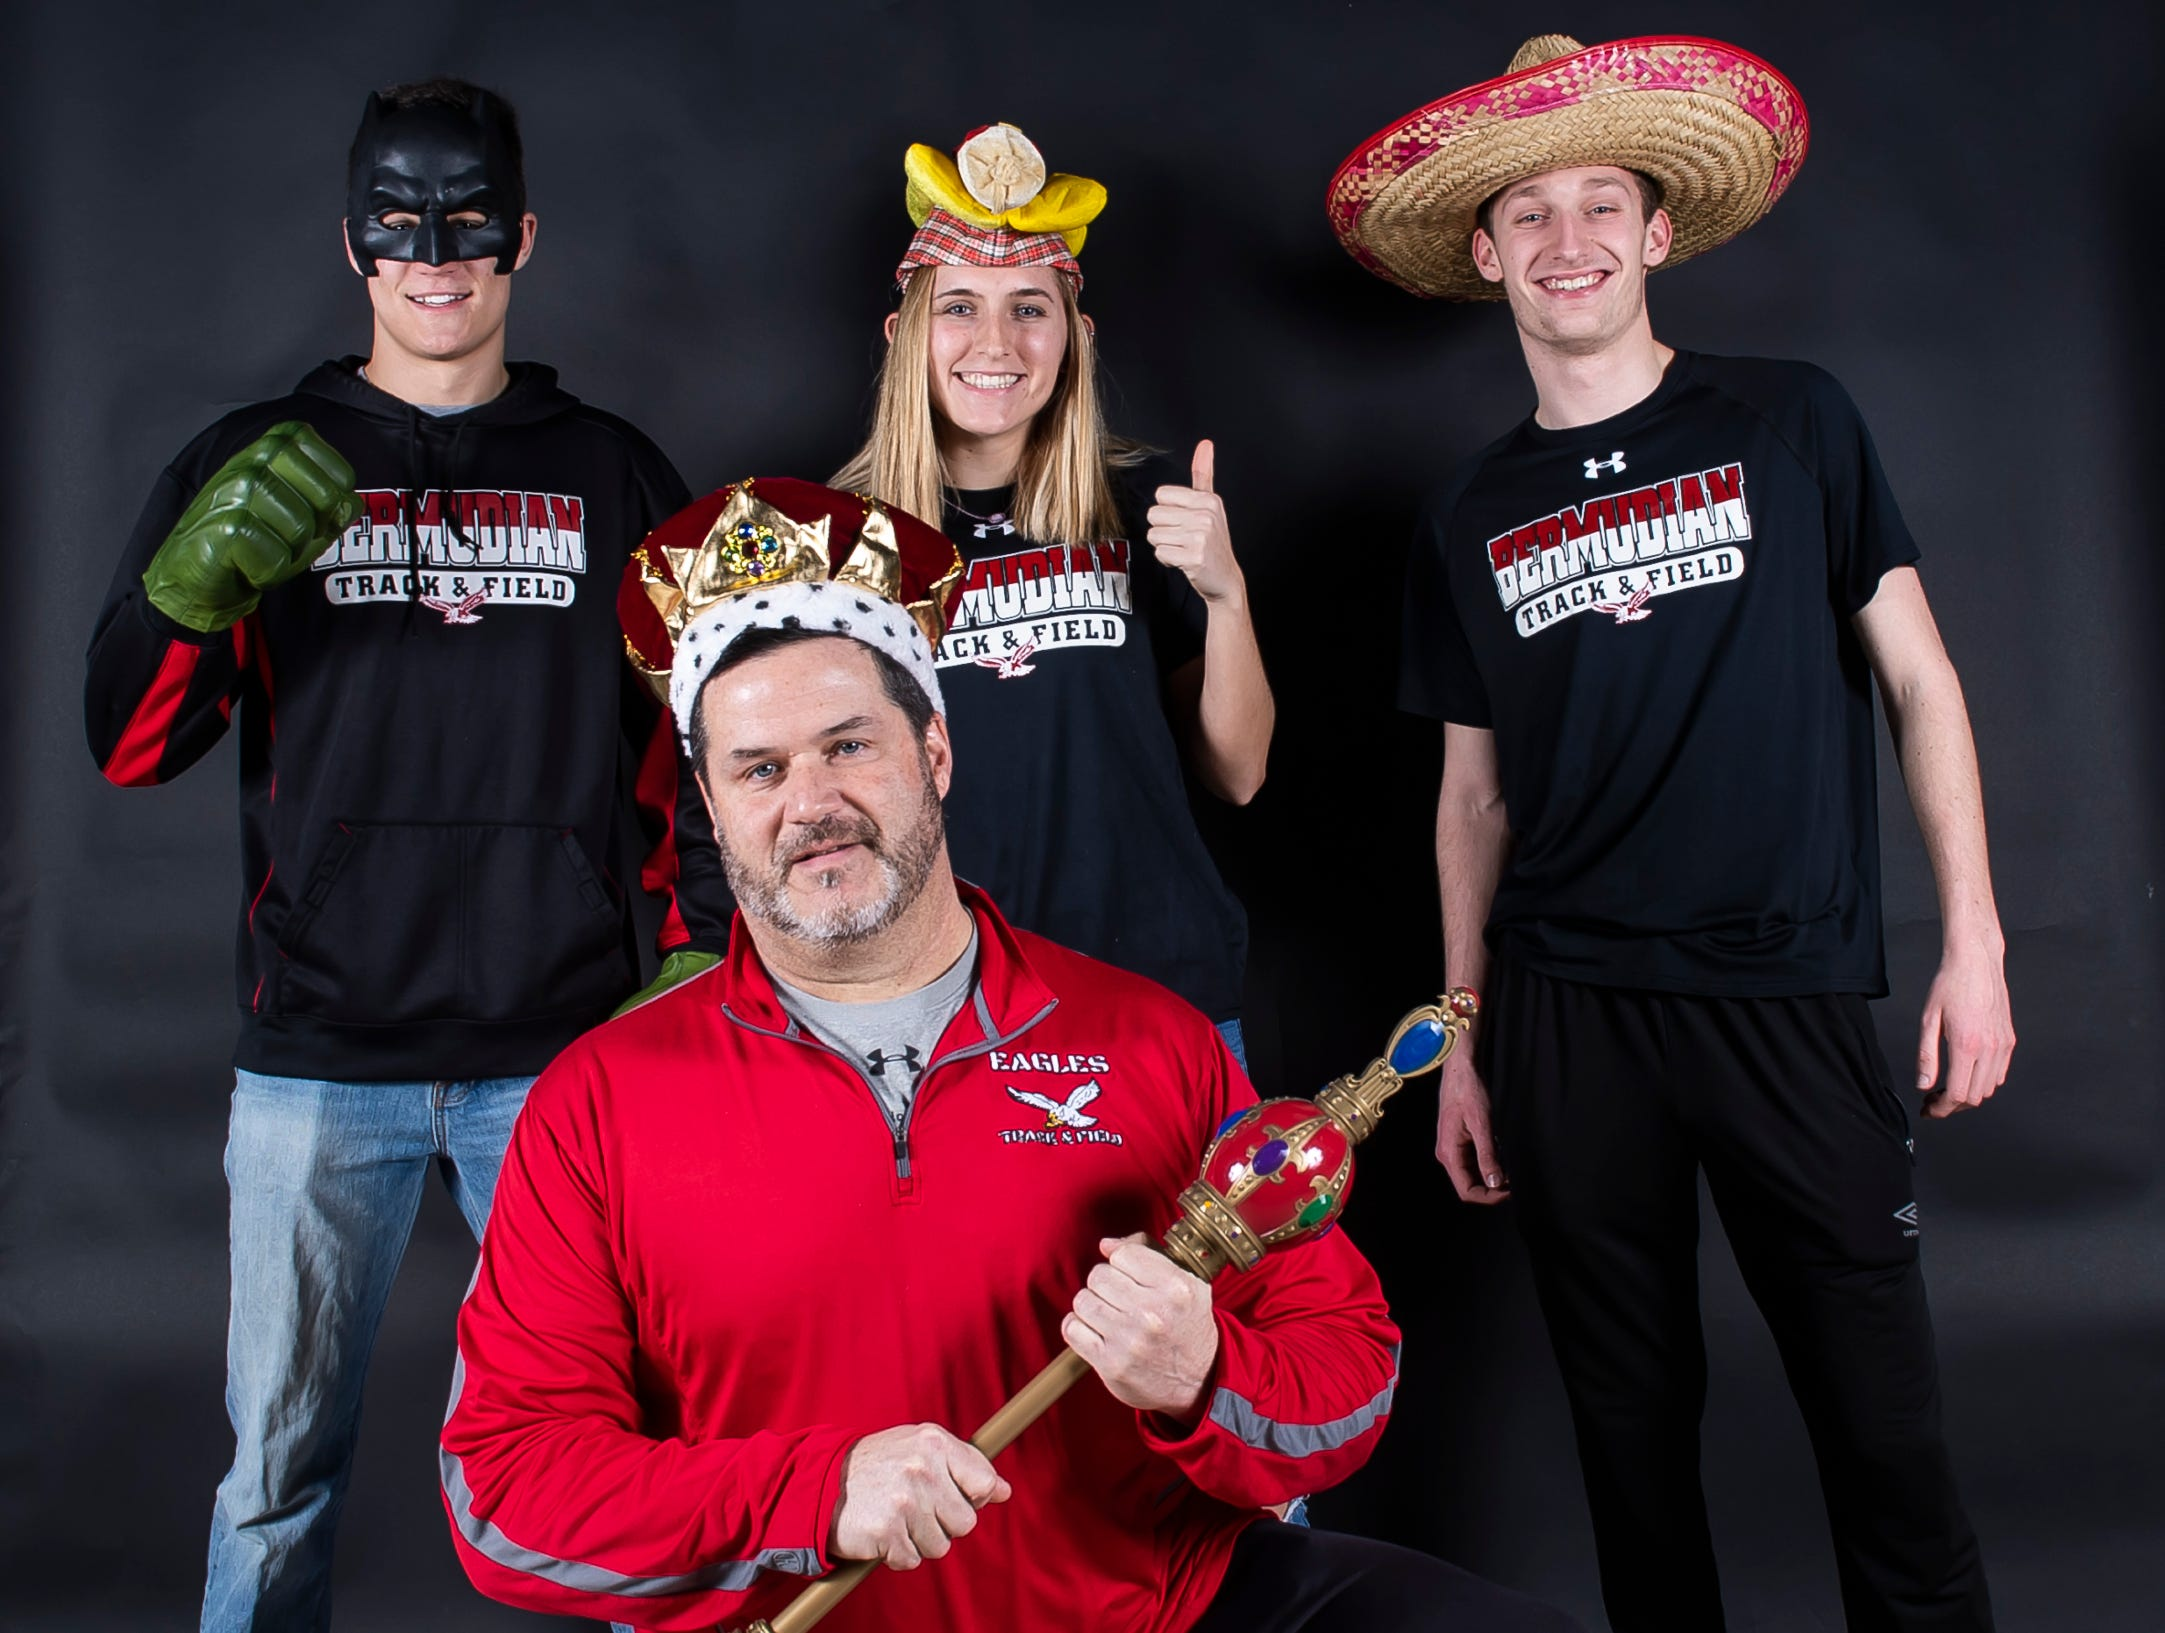 Bermudian Springs track and field athletes Thomas Bross, Kayla Pyles and Payton Rohrbaugh strike a pose with coach Chris King in the GameTimePA photo booth during spring sports media day in York Sunday, March 10, 2019.